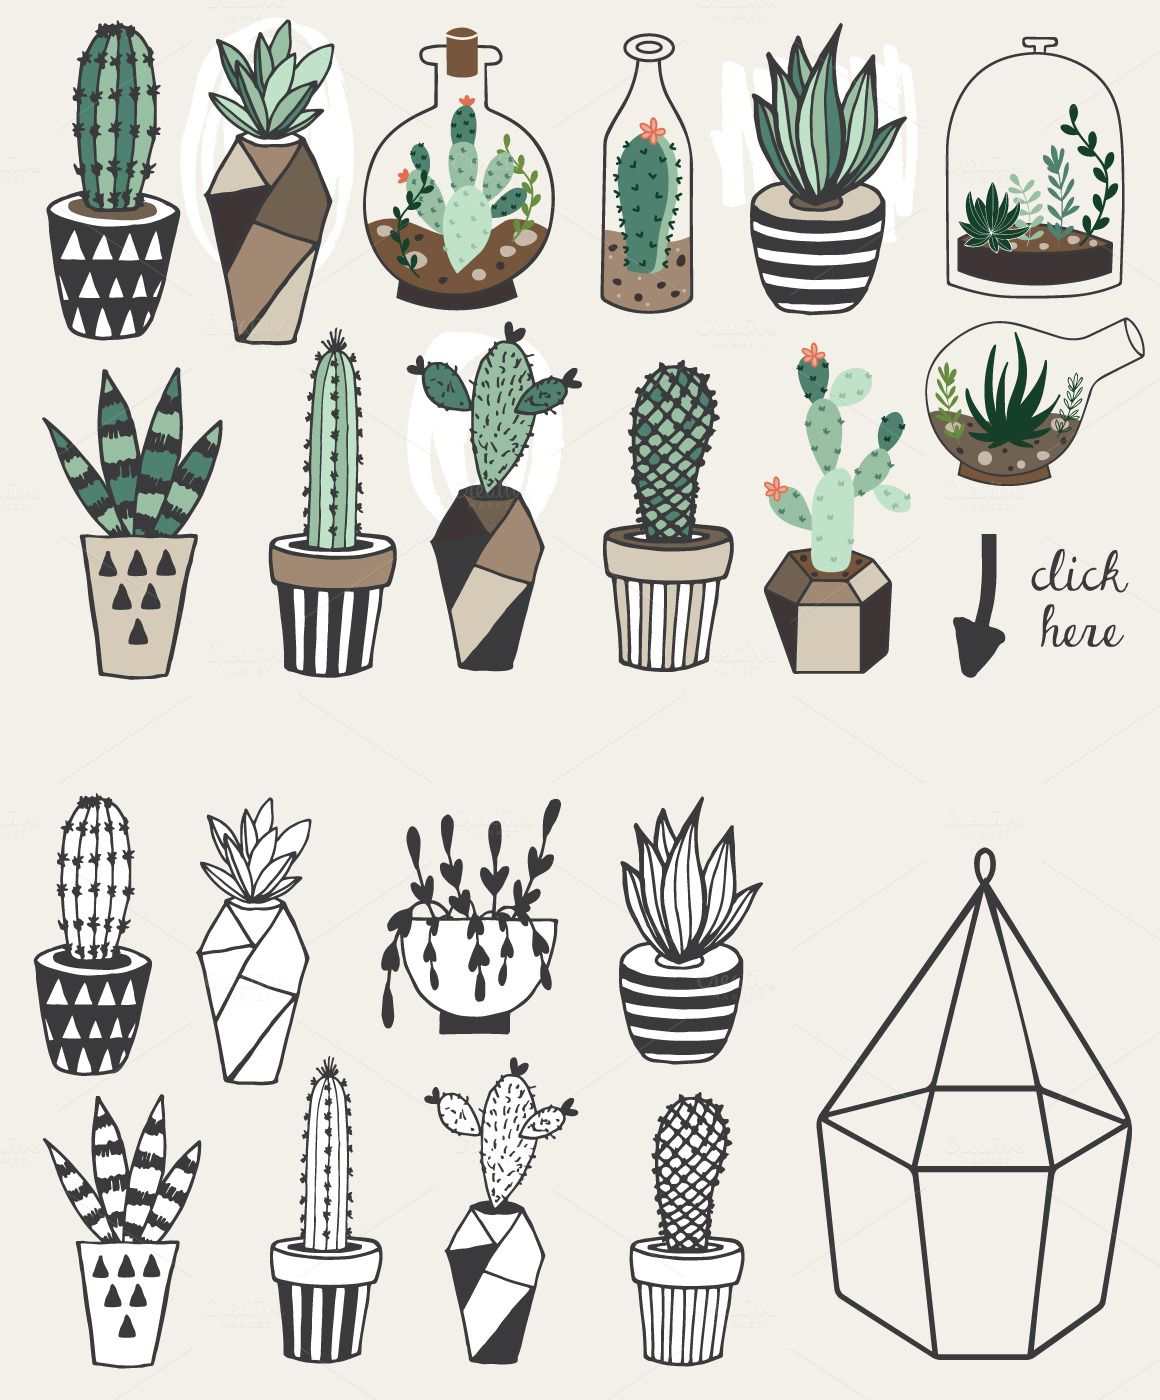 Cactus Flower Line Drawing : Off succulents unlimited license by lokko studio on